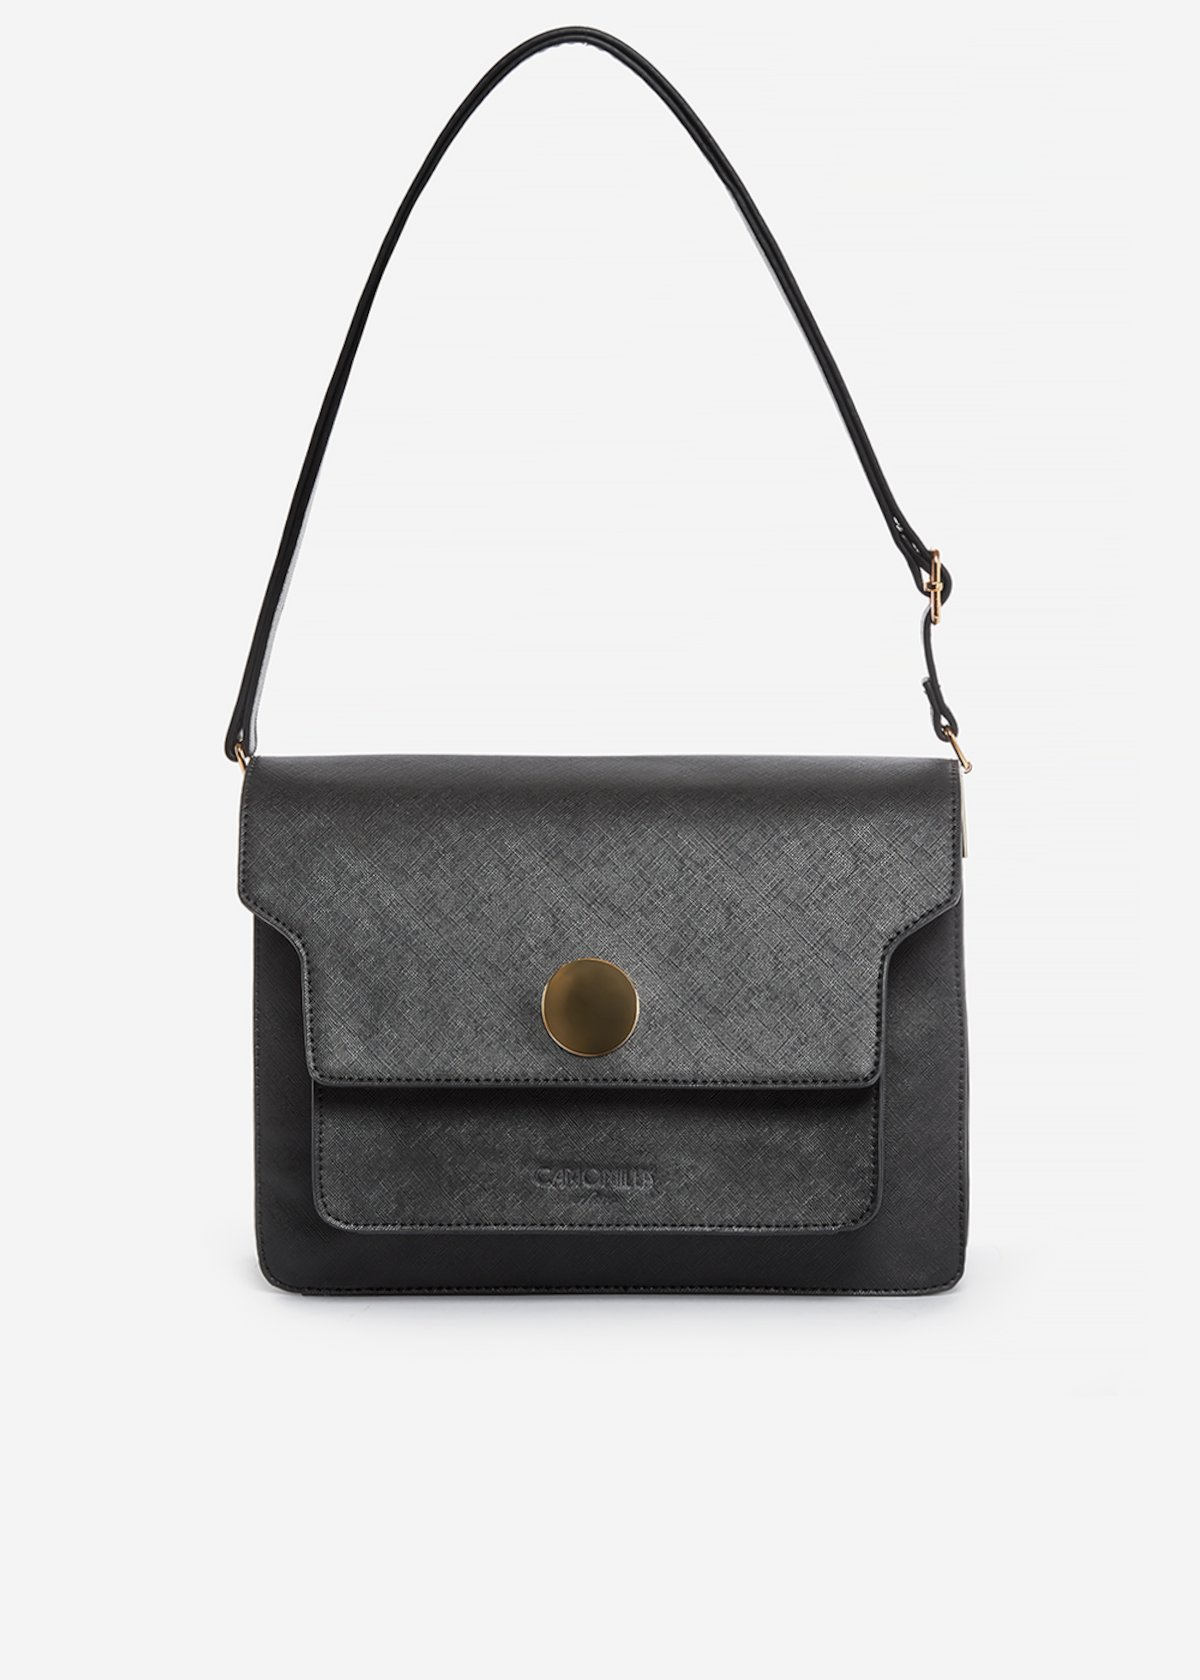 Brenda handbag of faux leather saffiano effect with metal ring detail - Black